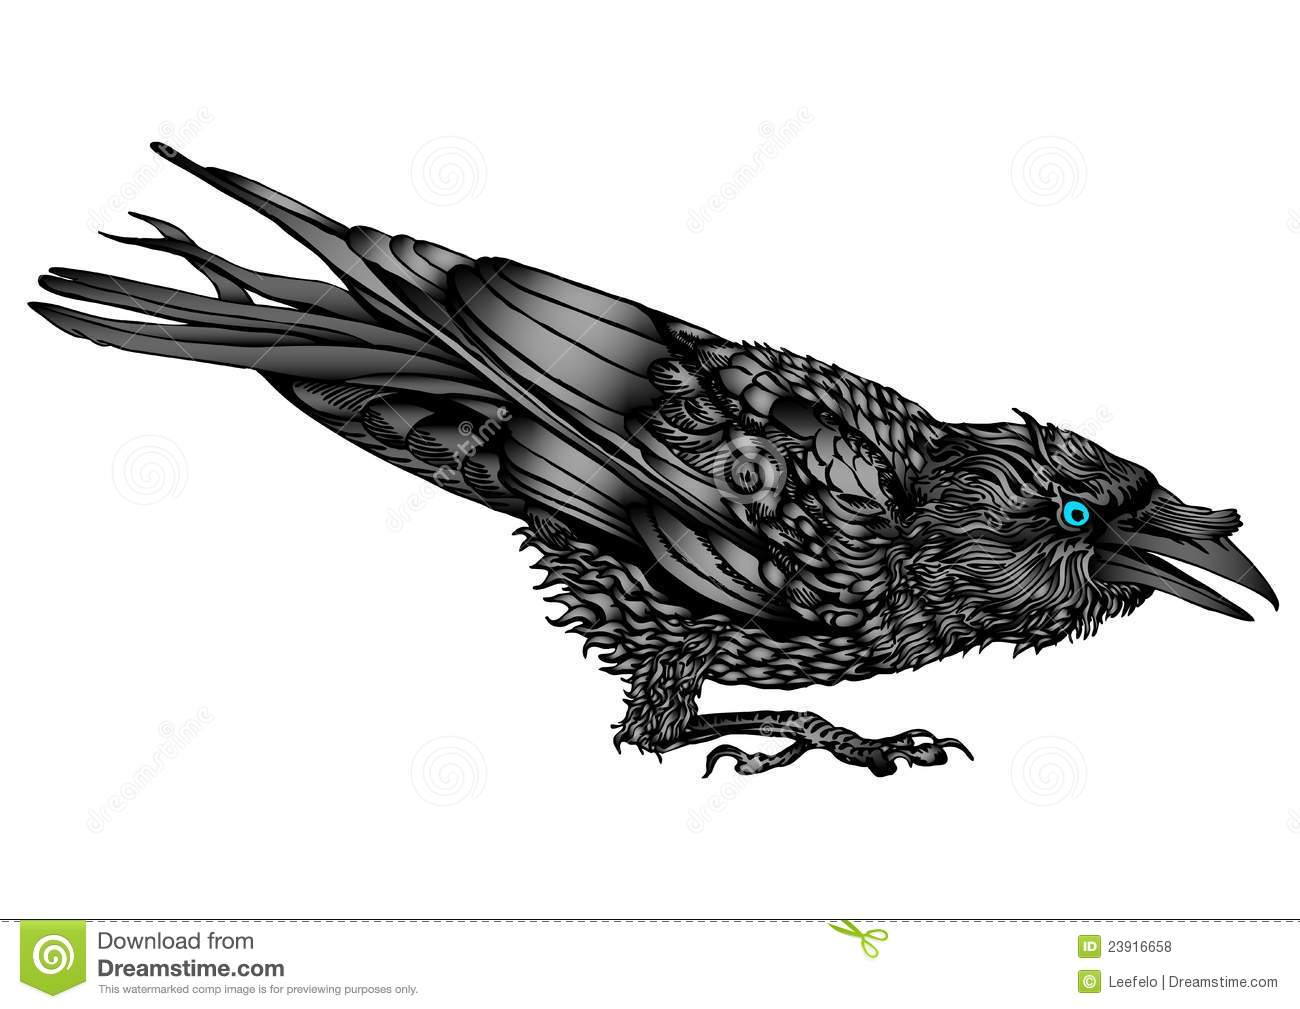 An illustration of a crouched raven with in a fighting mood